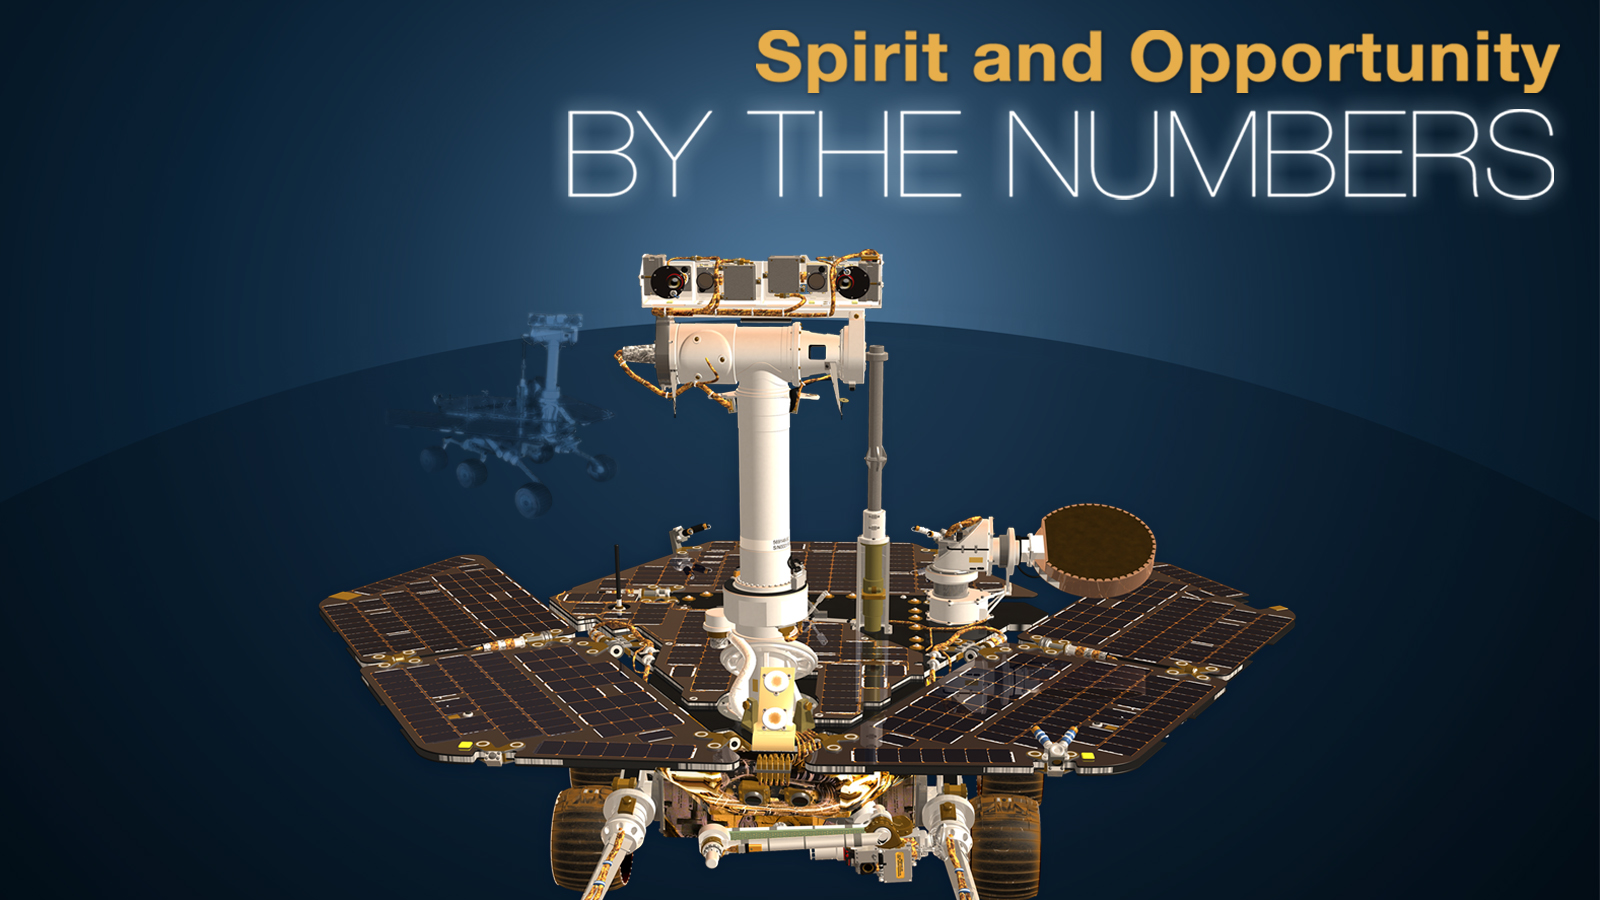 mars rover spirit and opportunity facts - photo #24